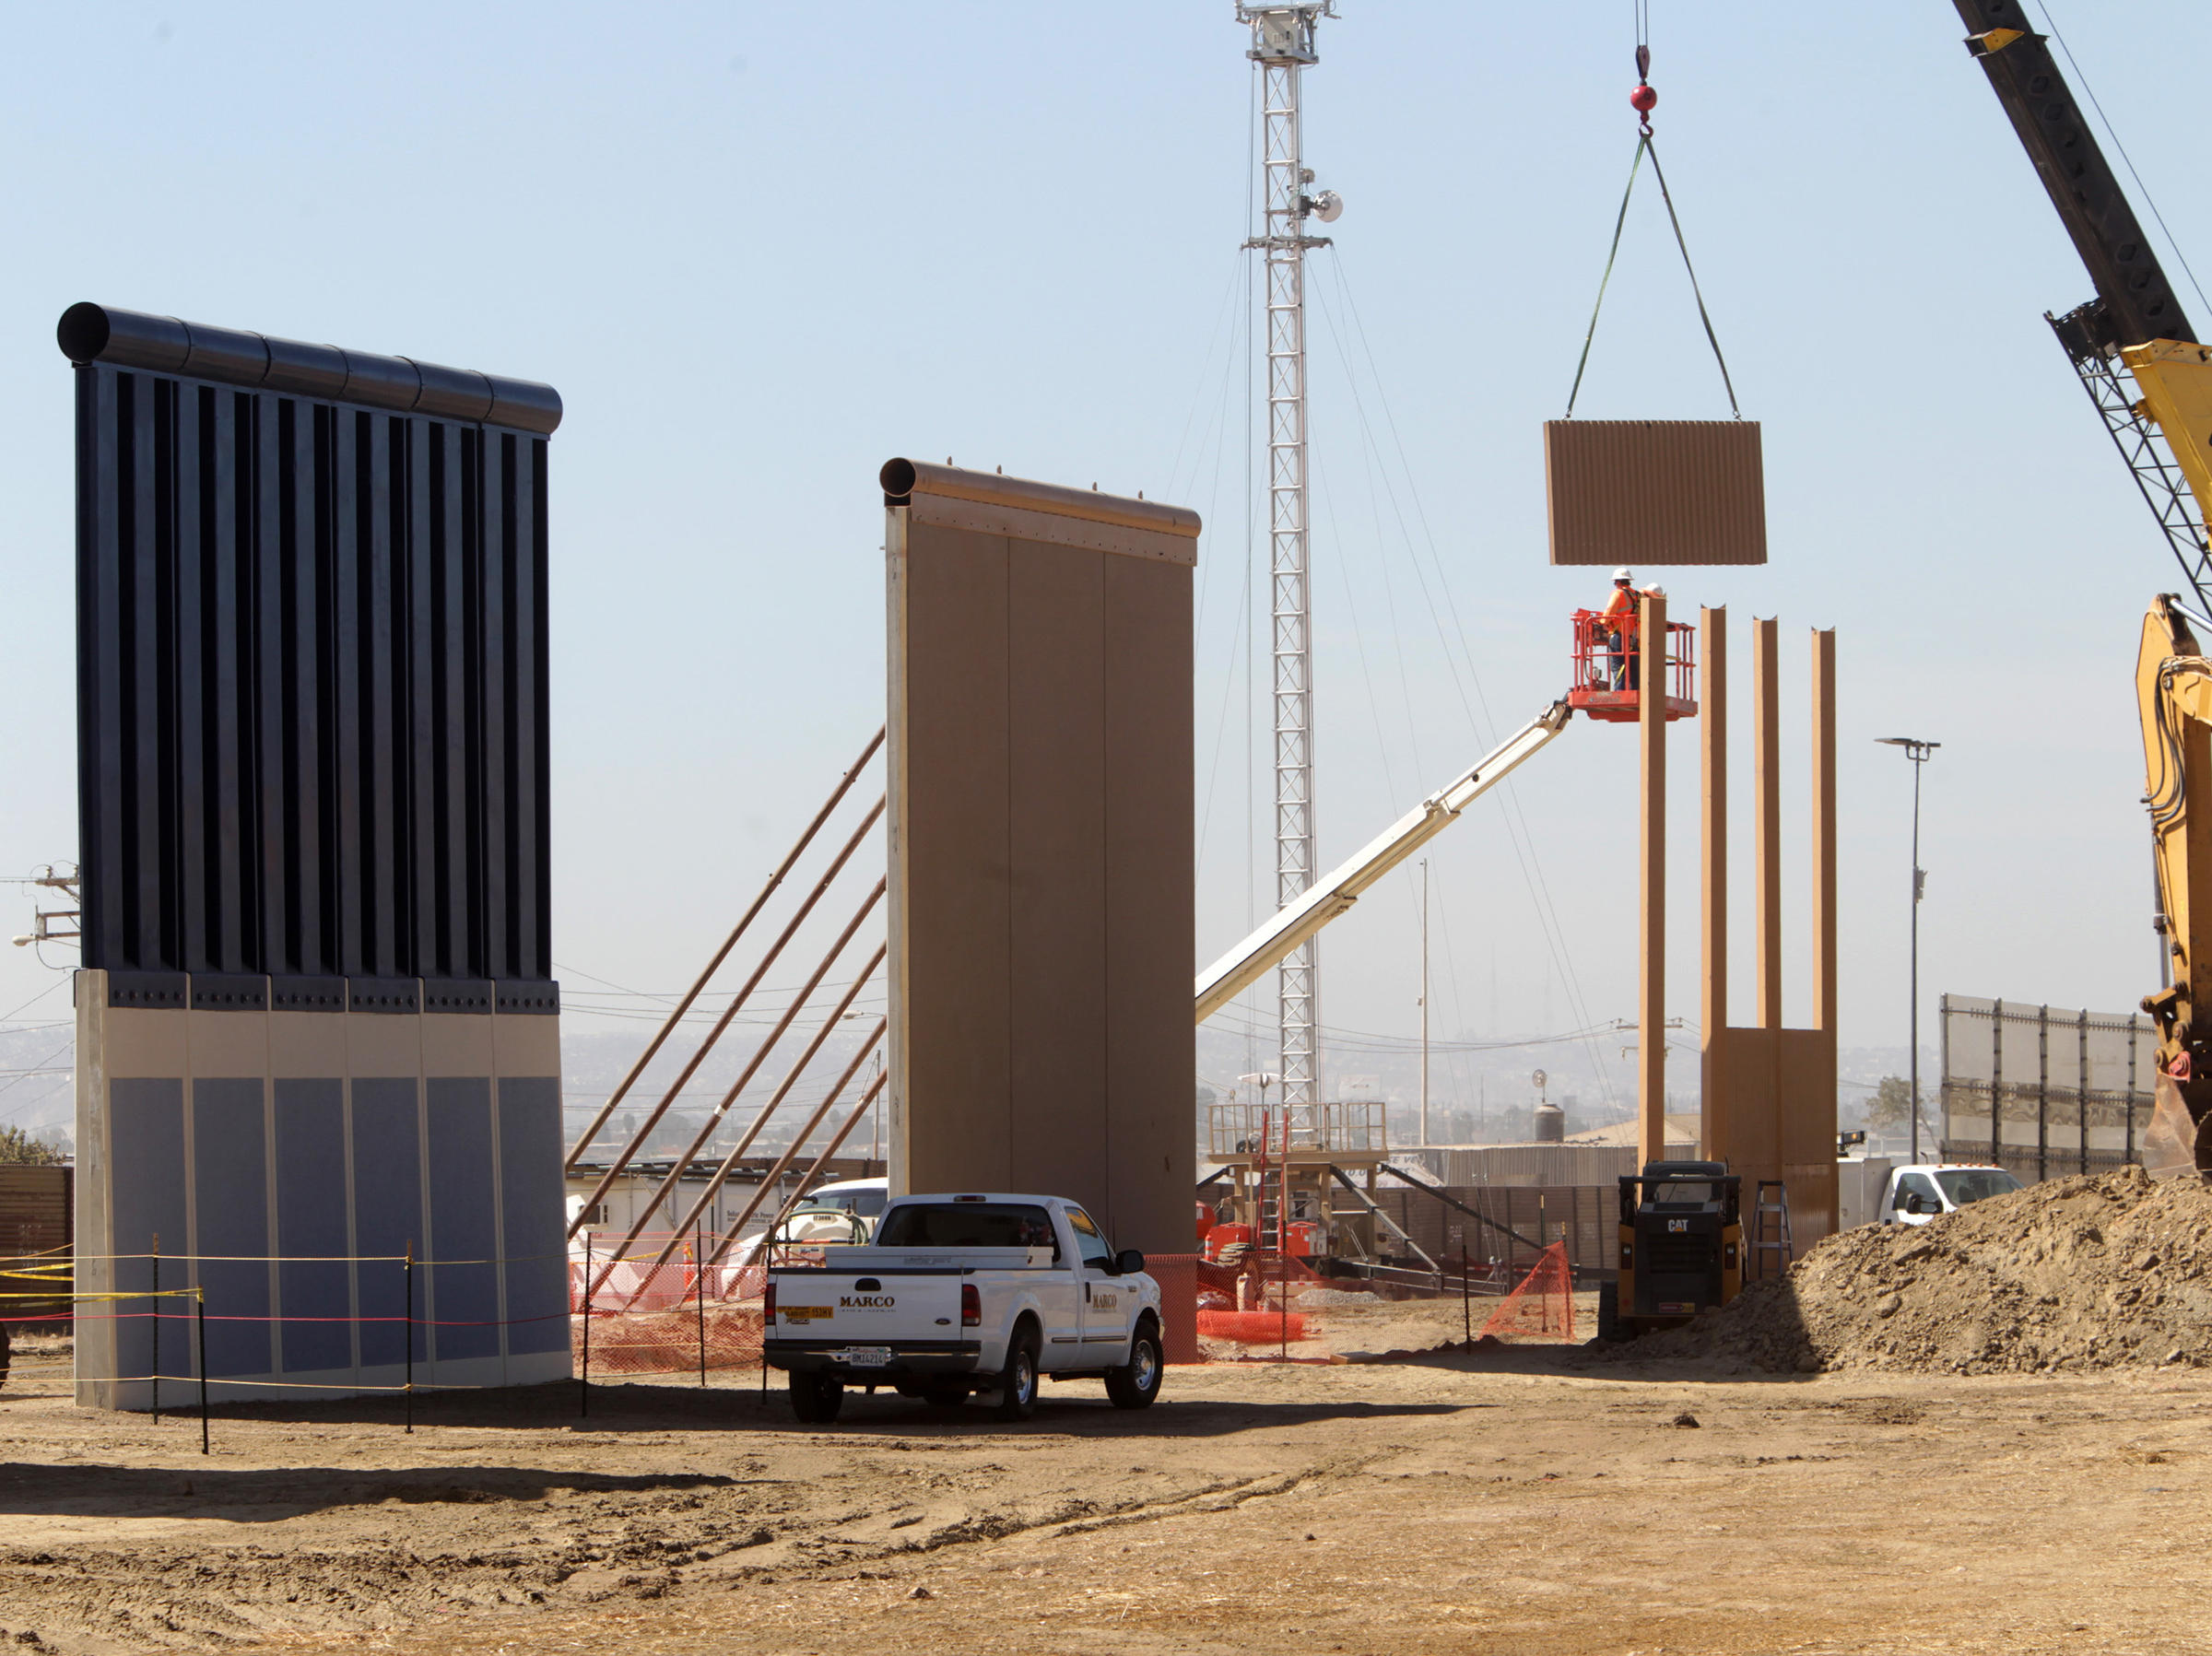 Border wall prototypes pictures